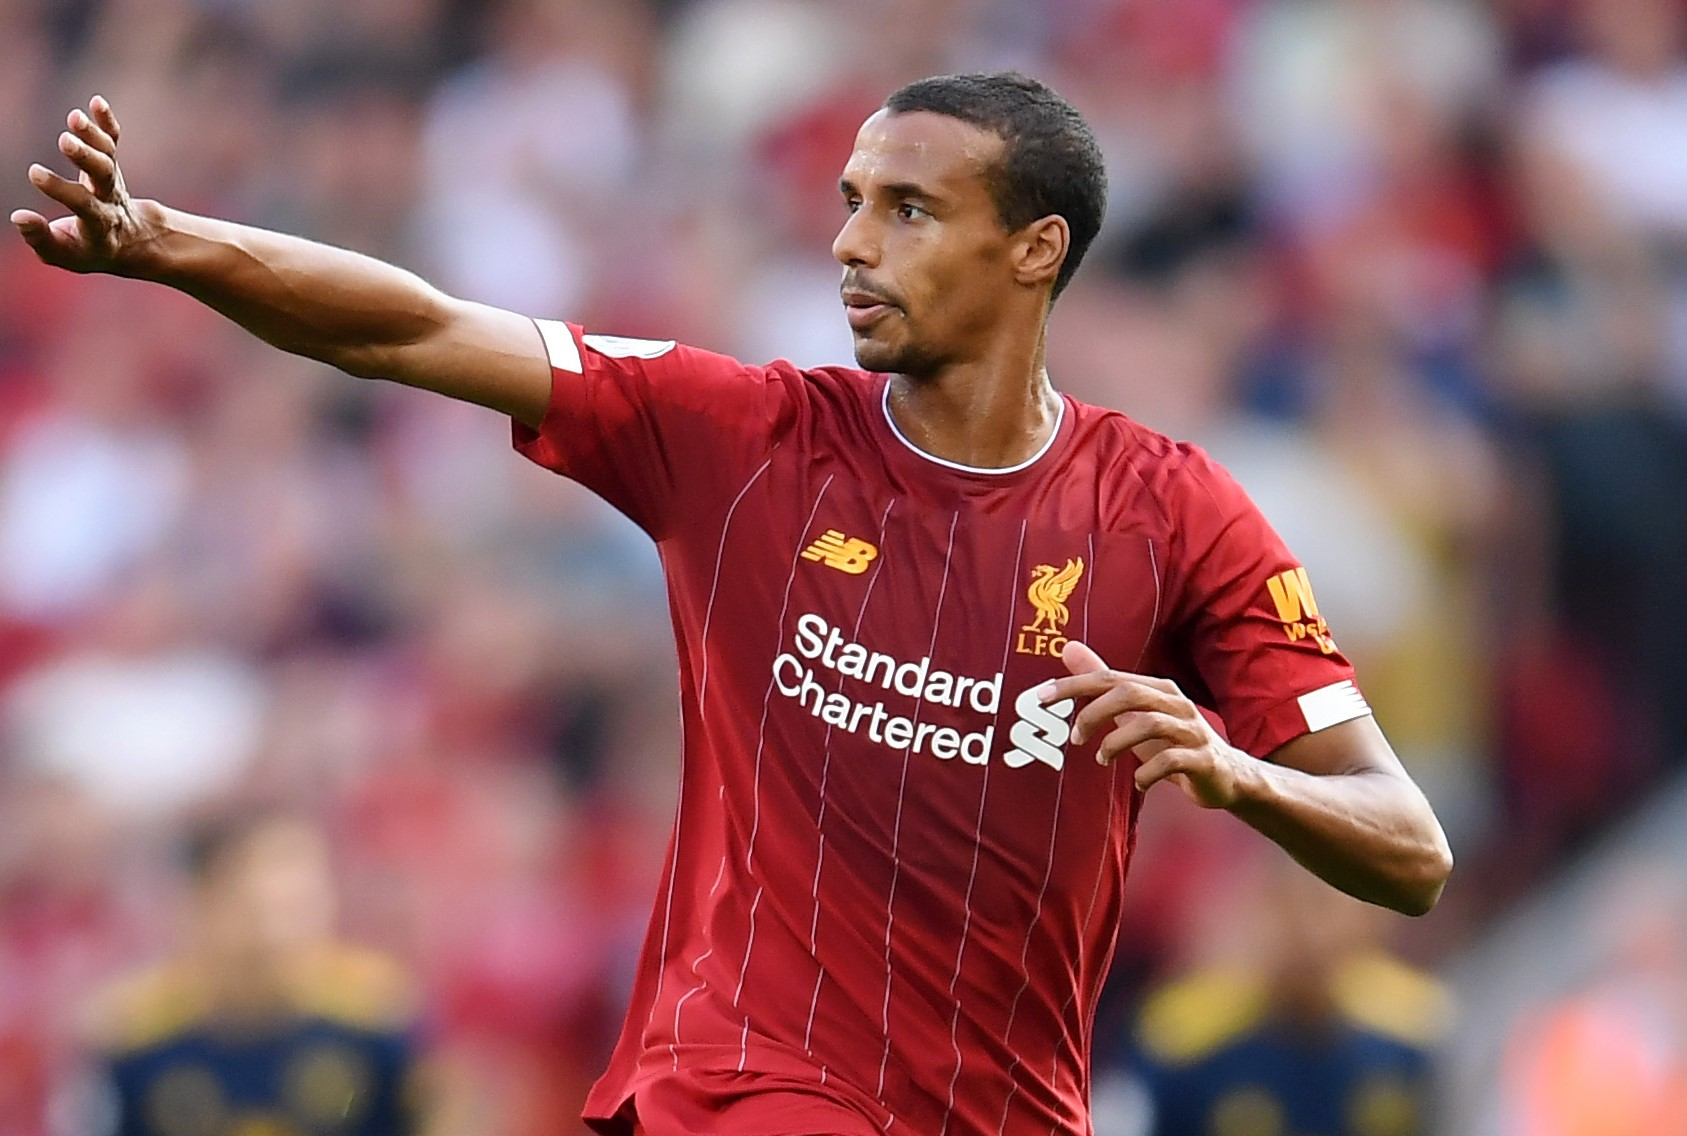 Matip growing in stature in Liverpool defence